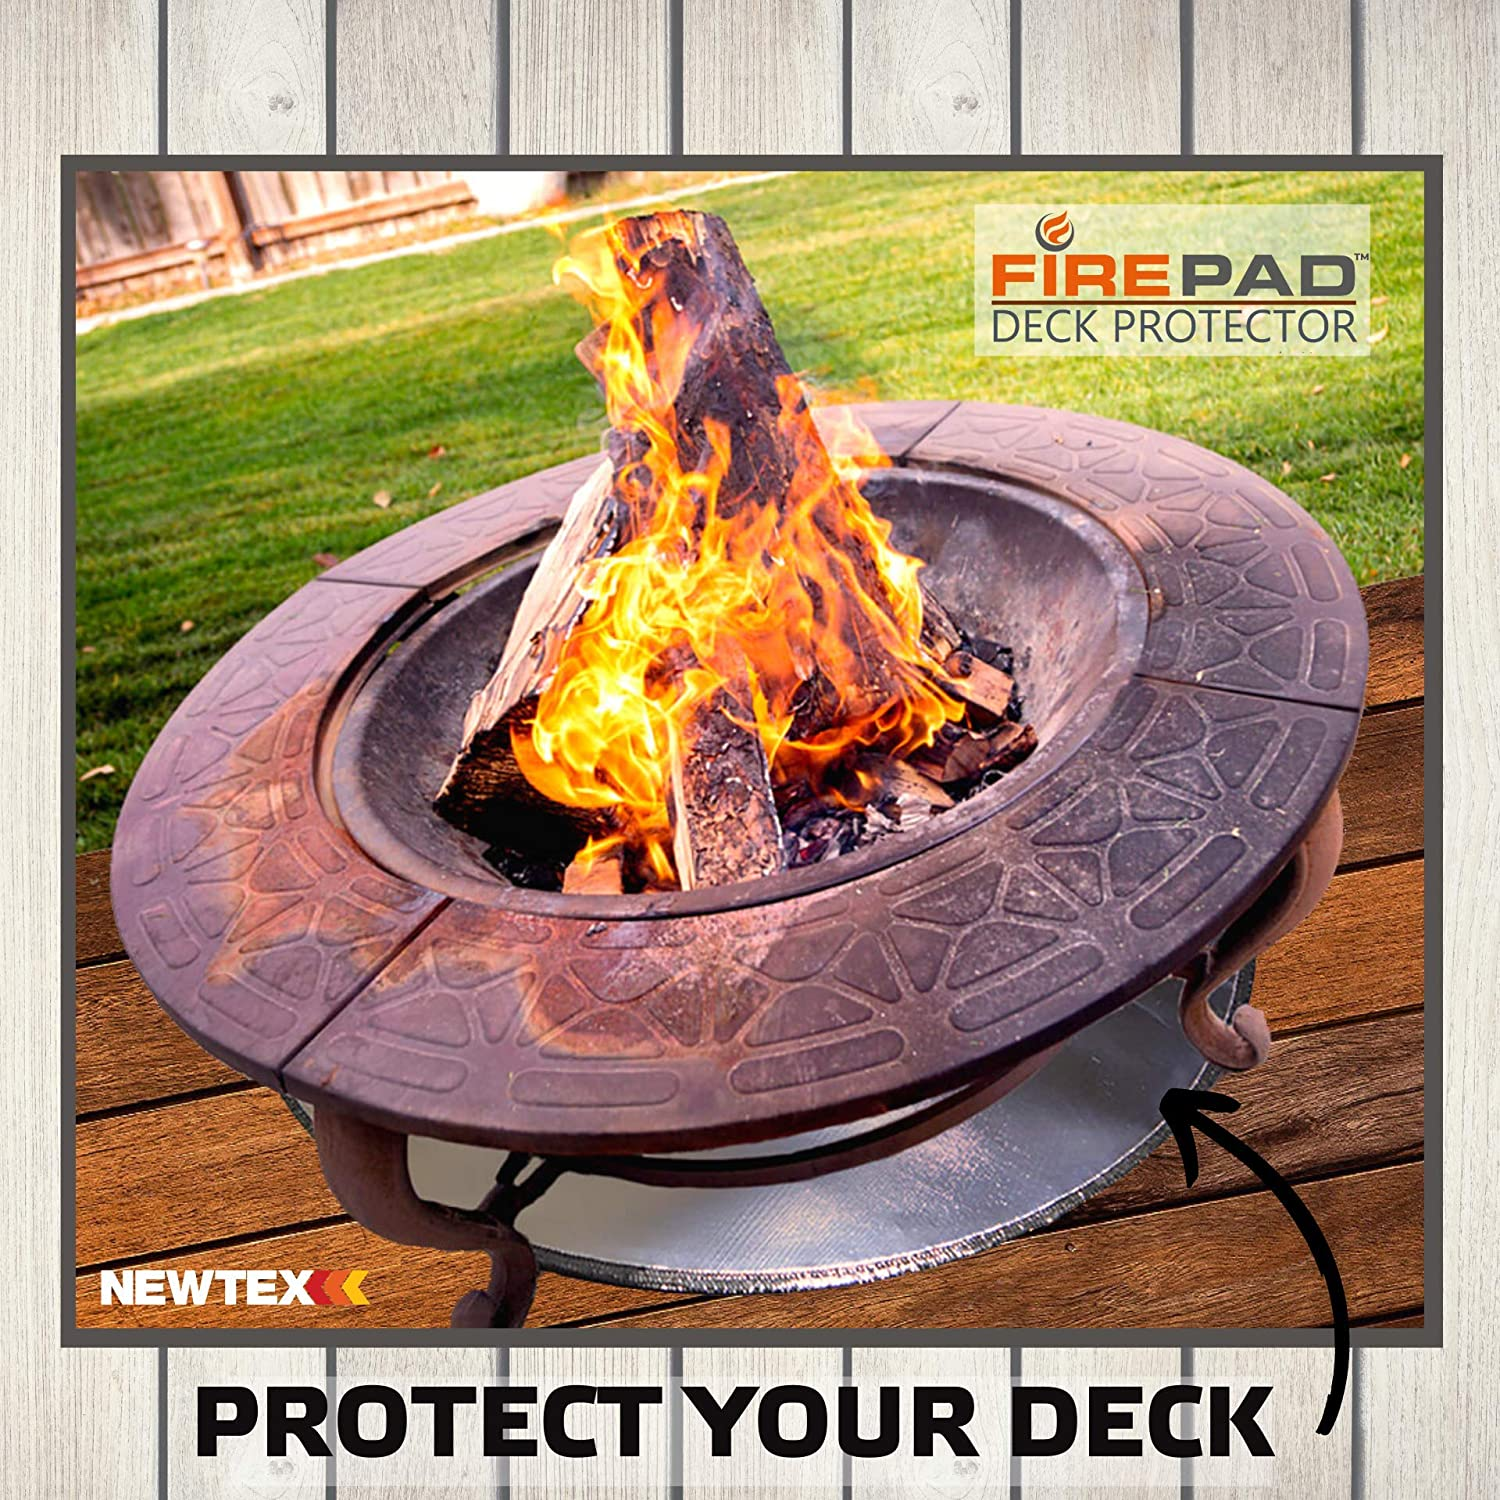 Newtex Firepad Deck Protector 24 Fire Pit High Temp Mat Heat Shield Protects Grass Patio Deck Fire Resistant Pad For Outdoors Bonfires Under Grill Mat Bbq Mat Made In Usa Garden Outdoor Amazon Com